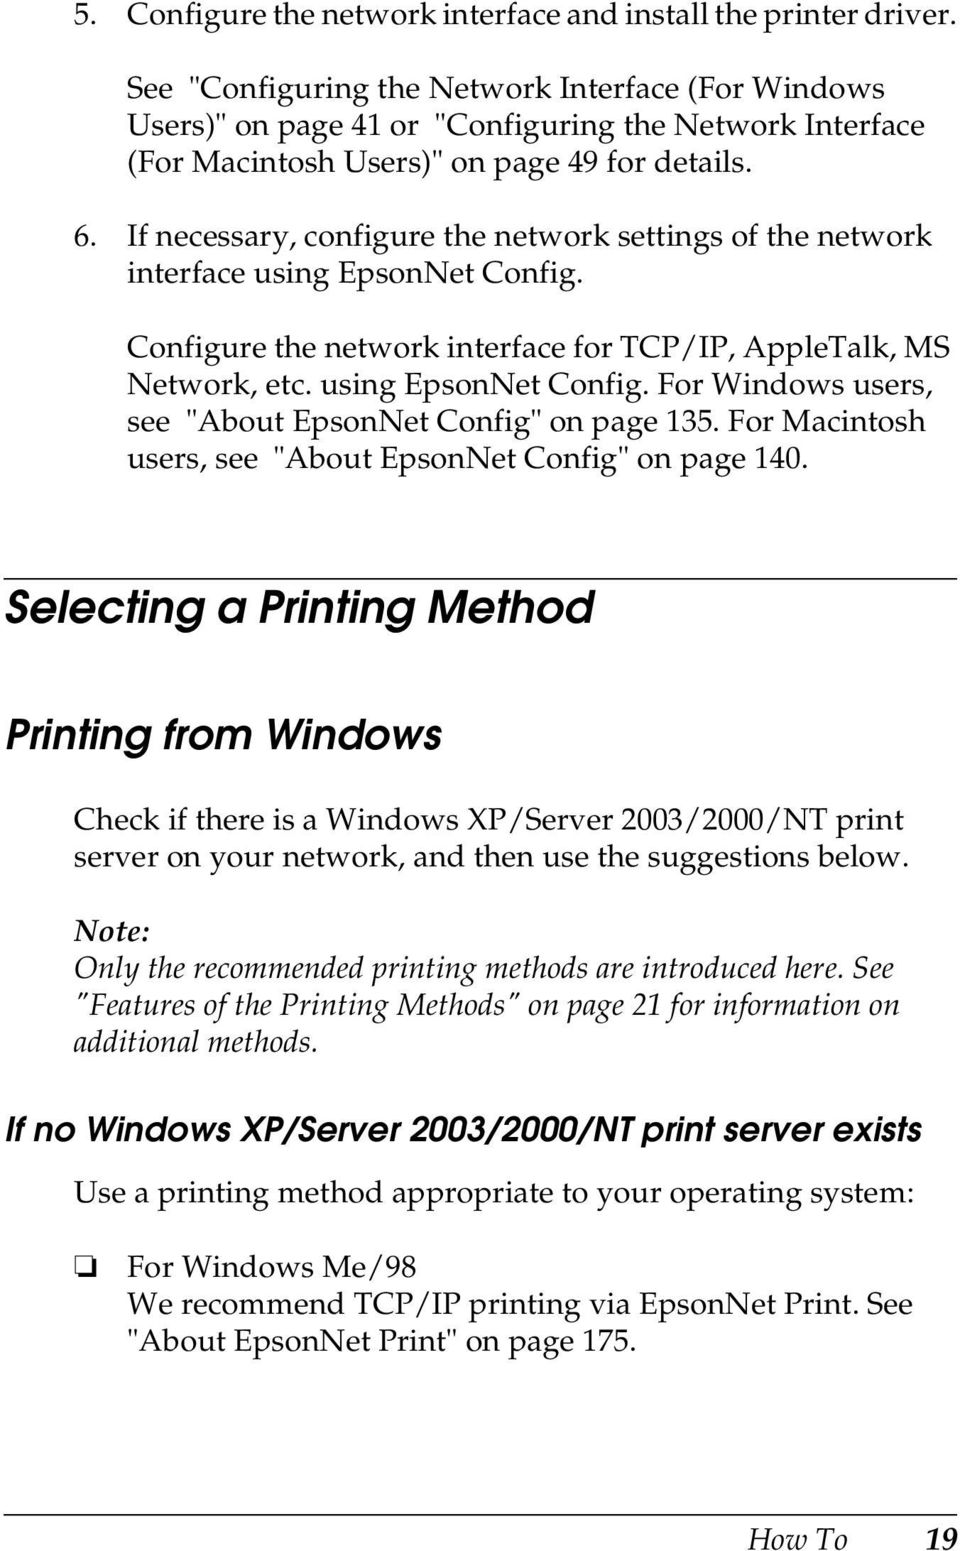 "If necessary, configure the network settings of the network interface using EpsonNet Config. Configure the network interface for TCP/IP, AppleTalk, MS Network, etc. using EpsonNet Config. For Windows users, see ""About EpsonNet Config"" on page 15."